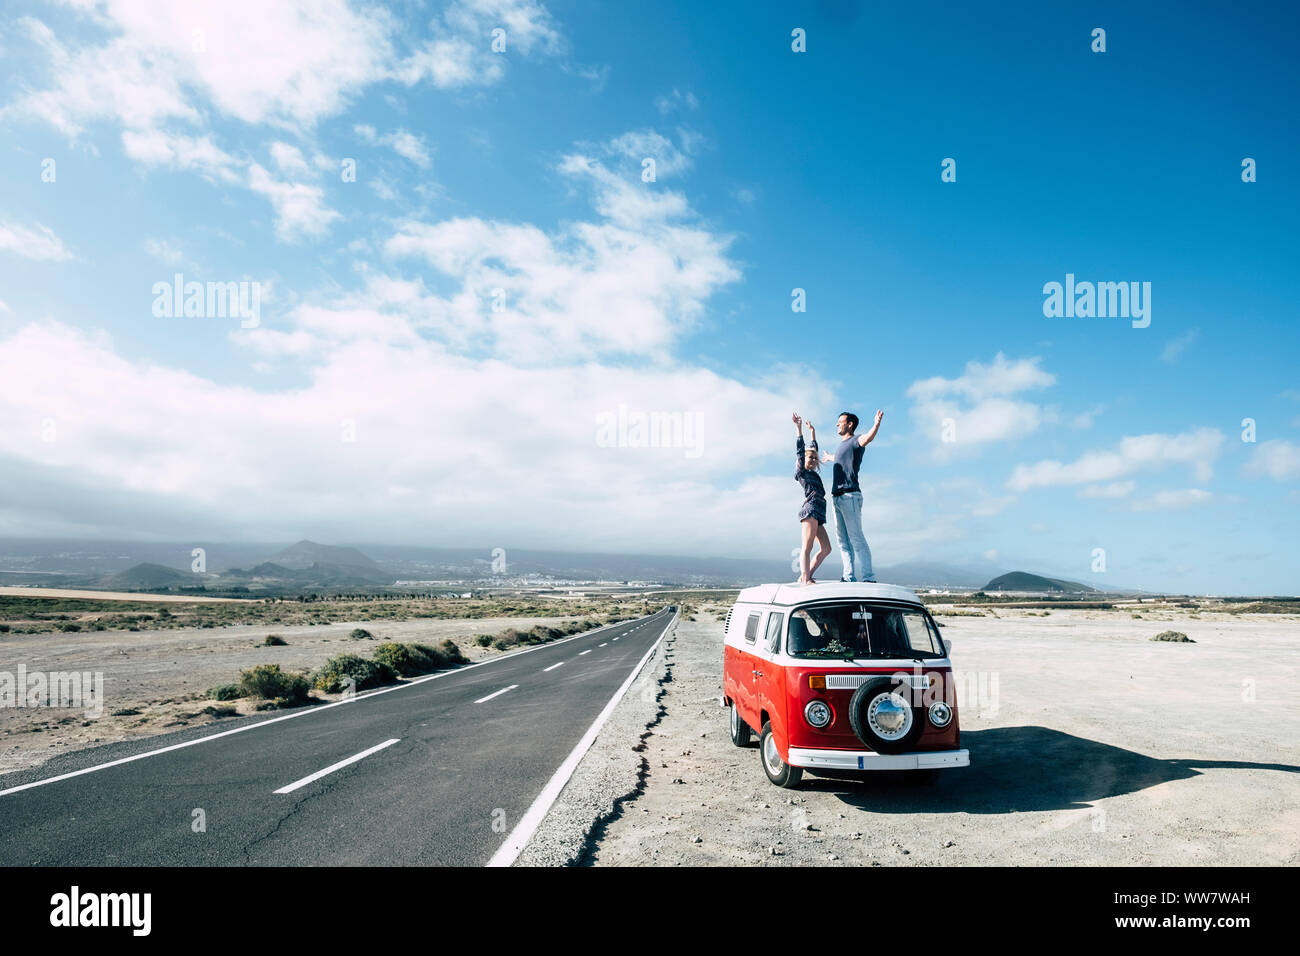 hippy style for an alternative vacation time outdoor leisure activity for young couple caucasian beautiful staying on the rooftop of a vintage van near a long road for travel concept. Stock Photo